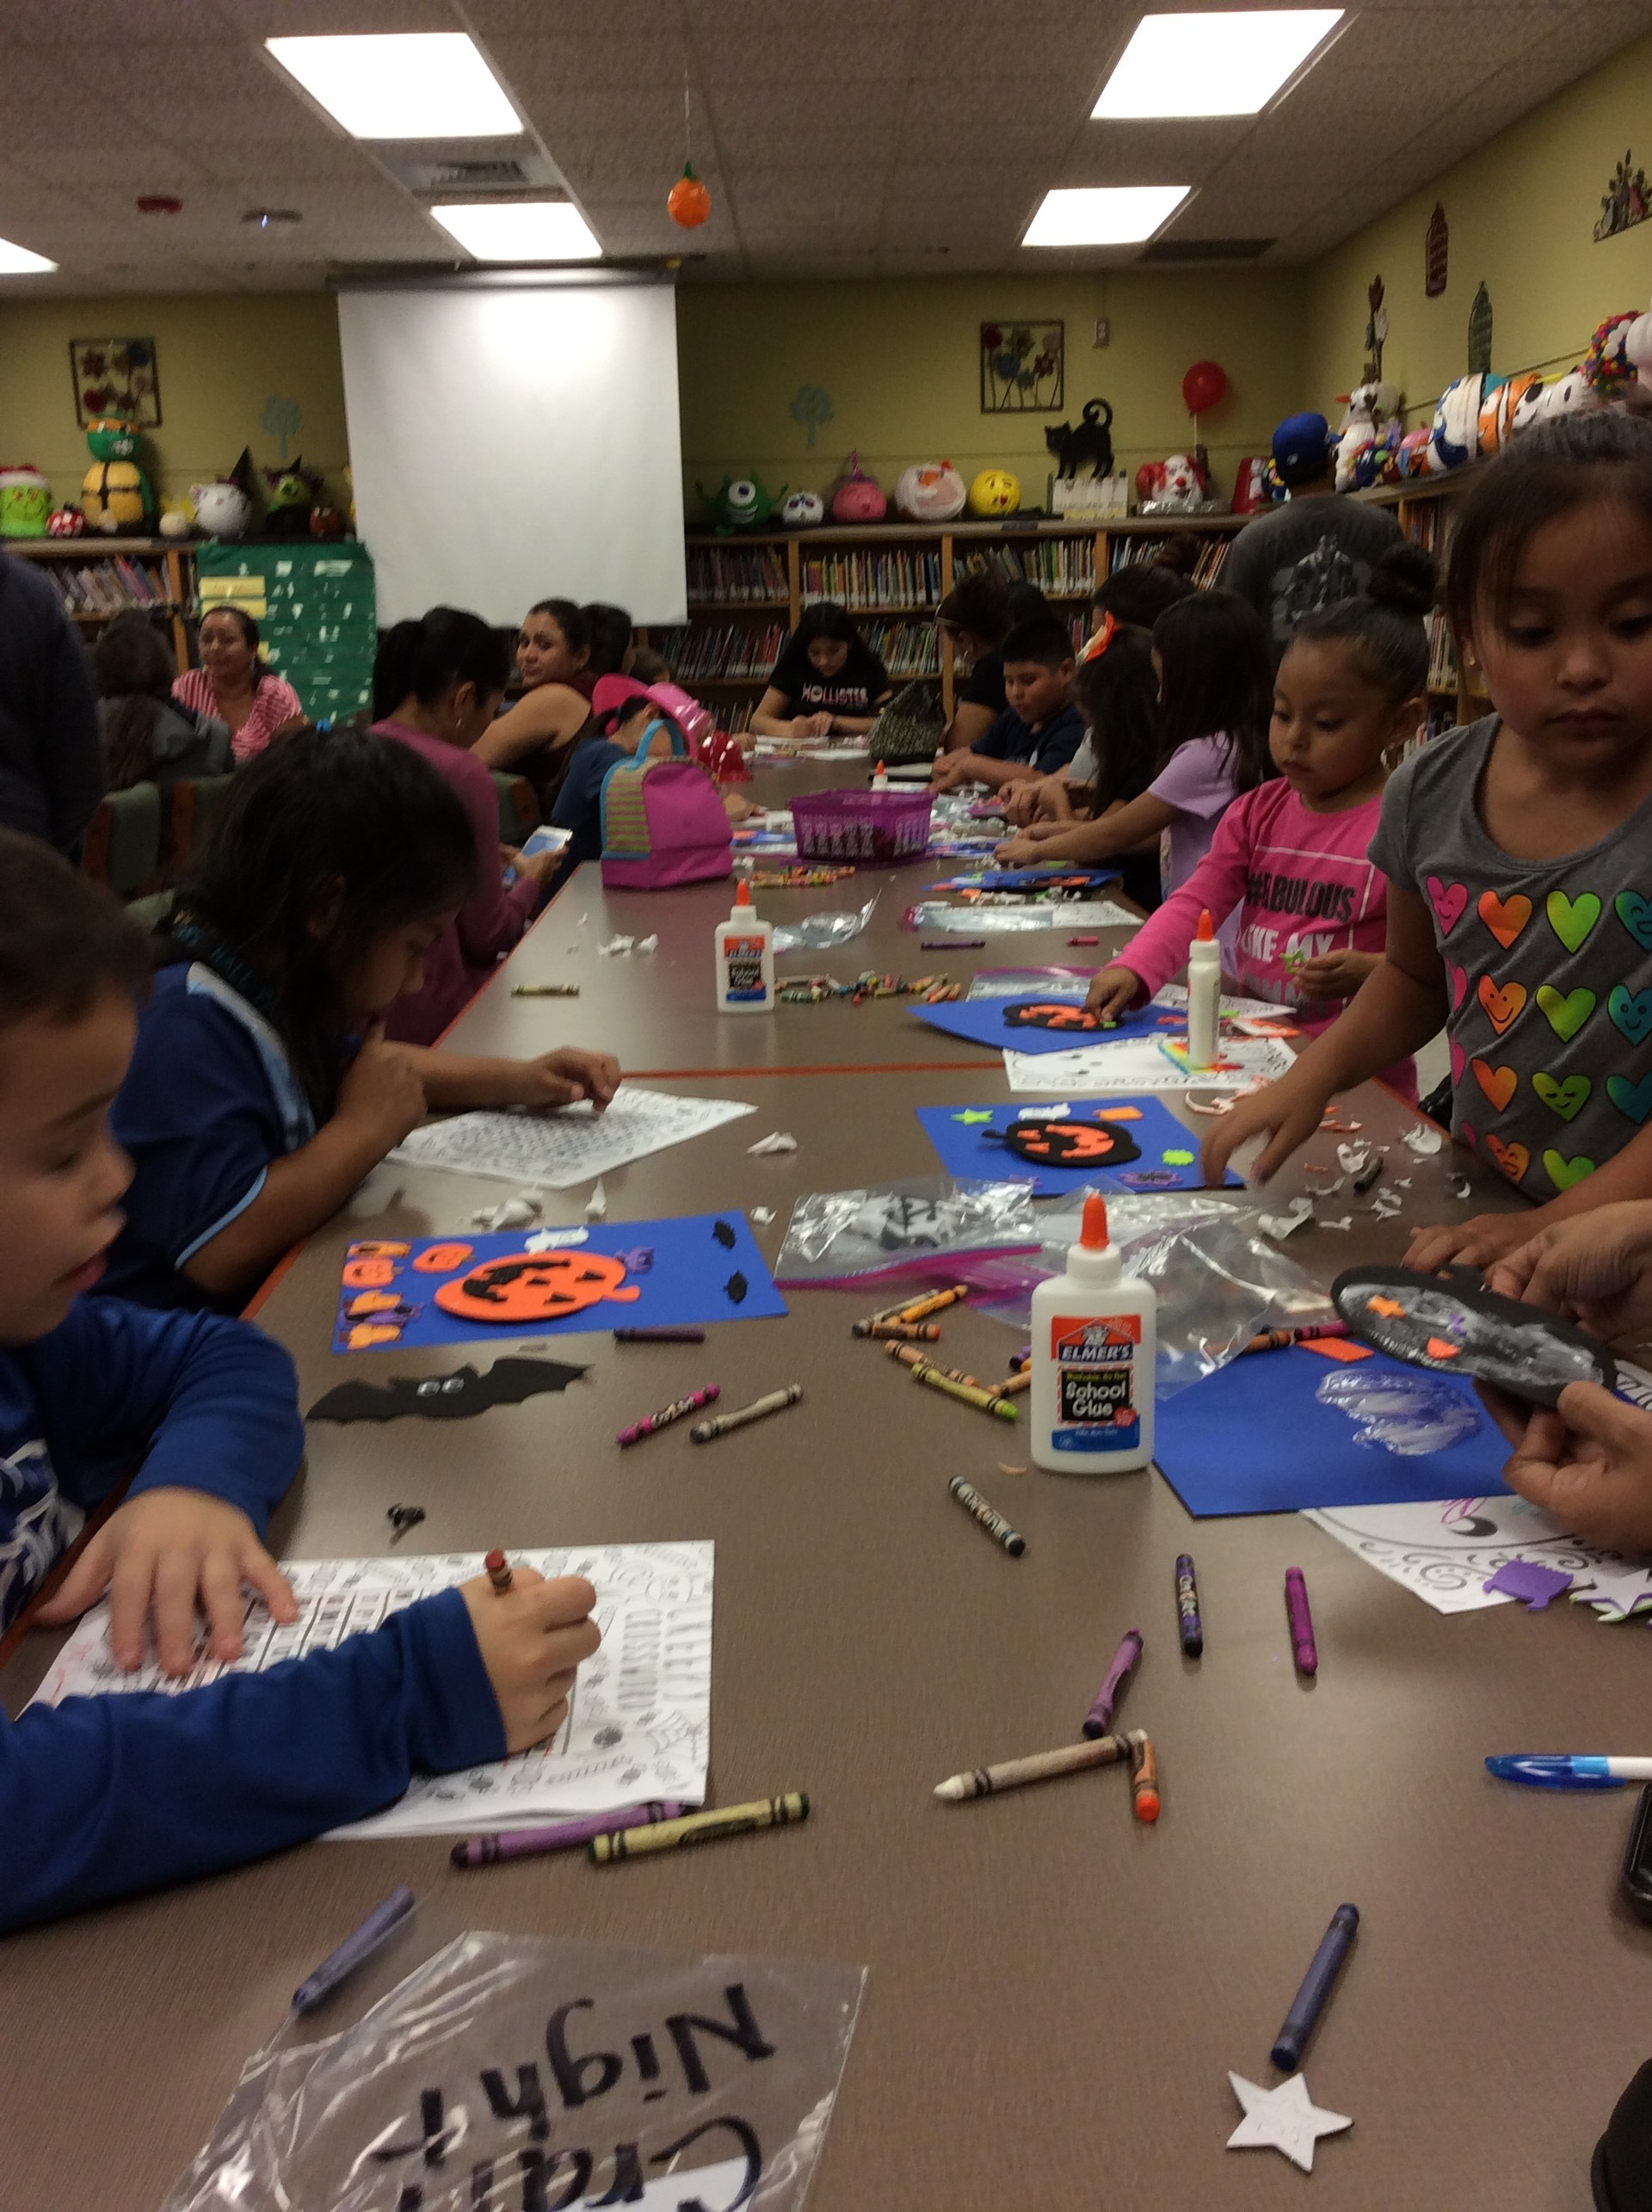 Students working on crafts in library.